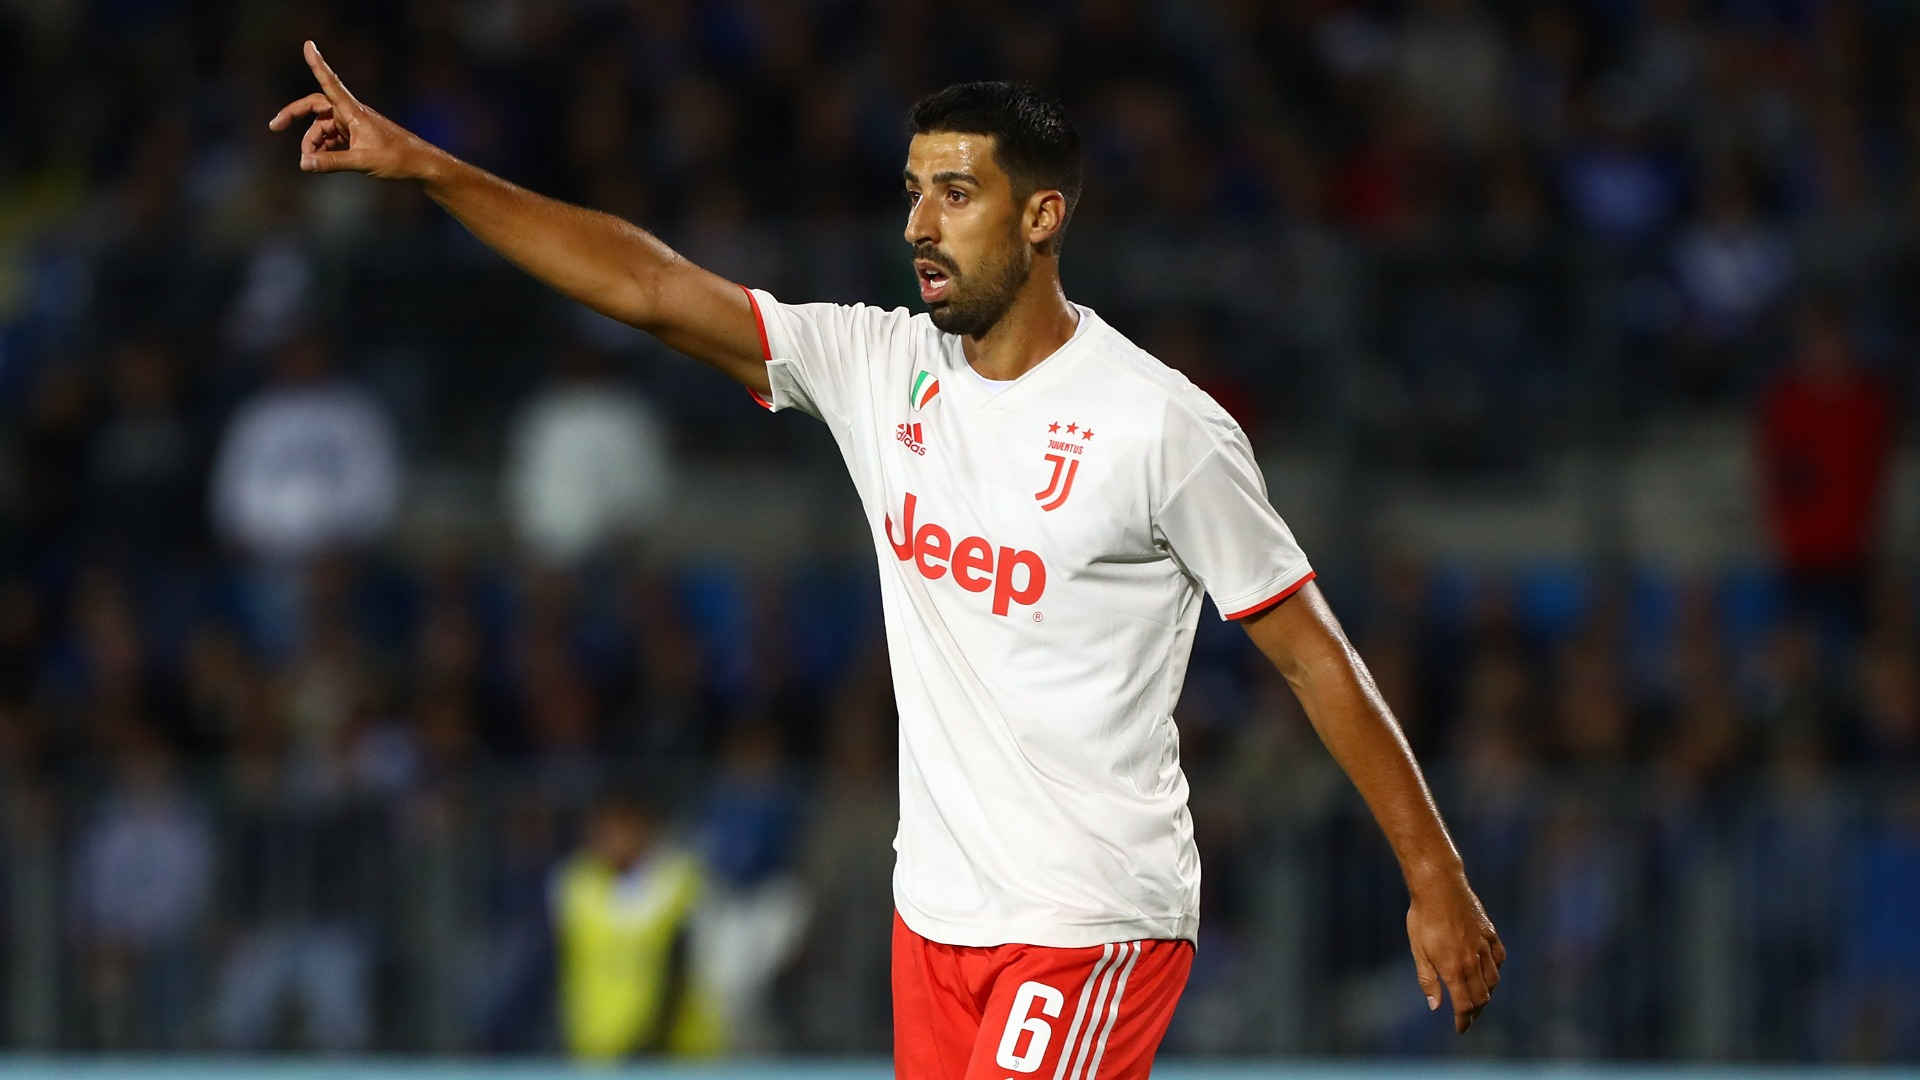 Juventus star Khedira out for three months following knee surgery